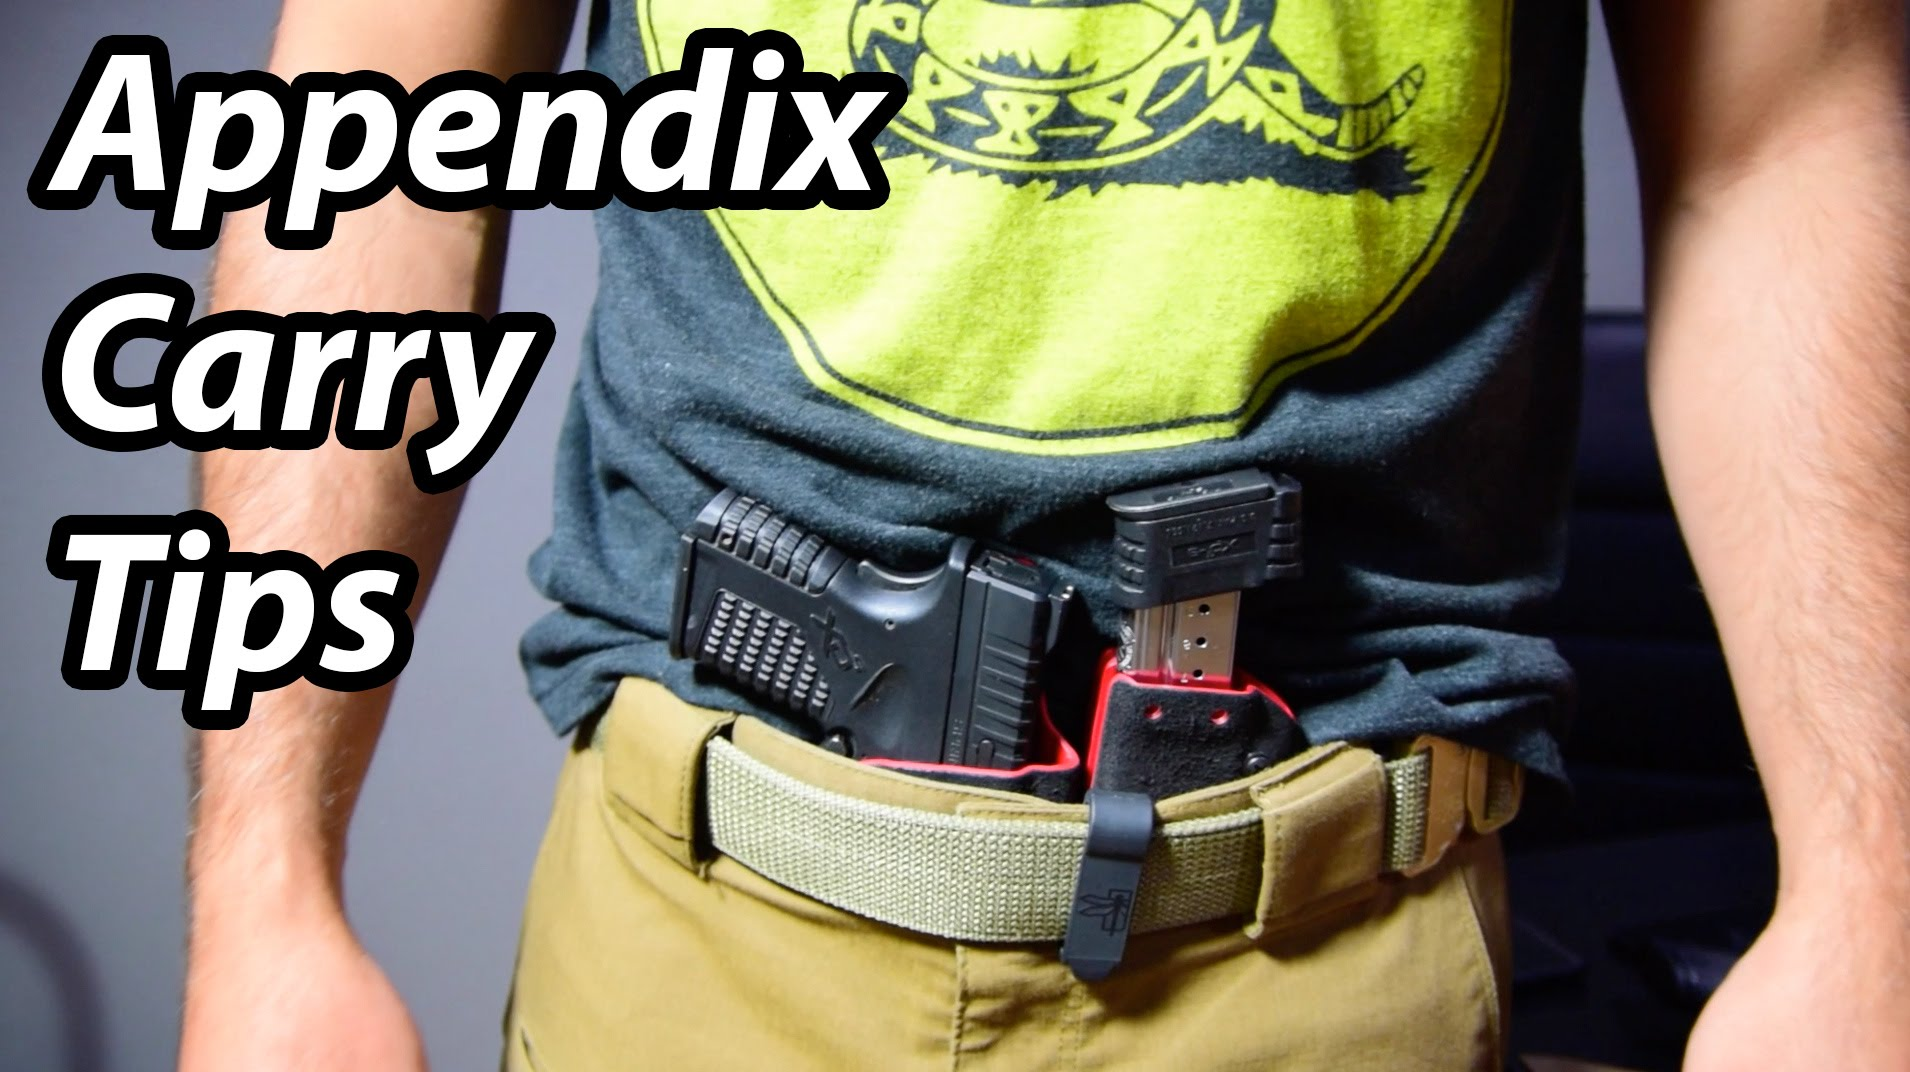 Appendix Carry Tips - Considerations for concealed carrying appendix iwb